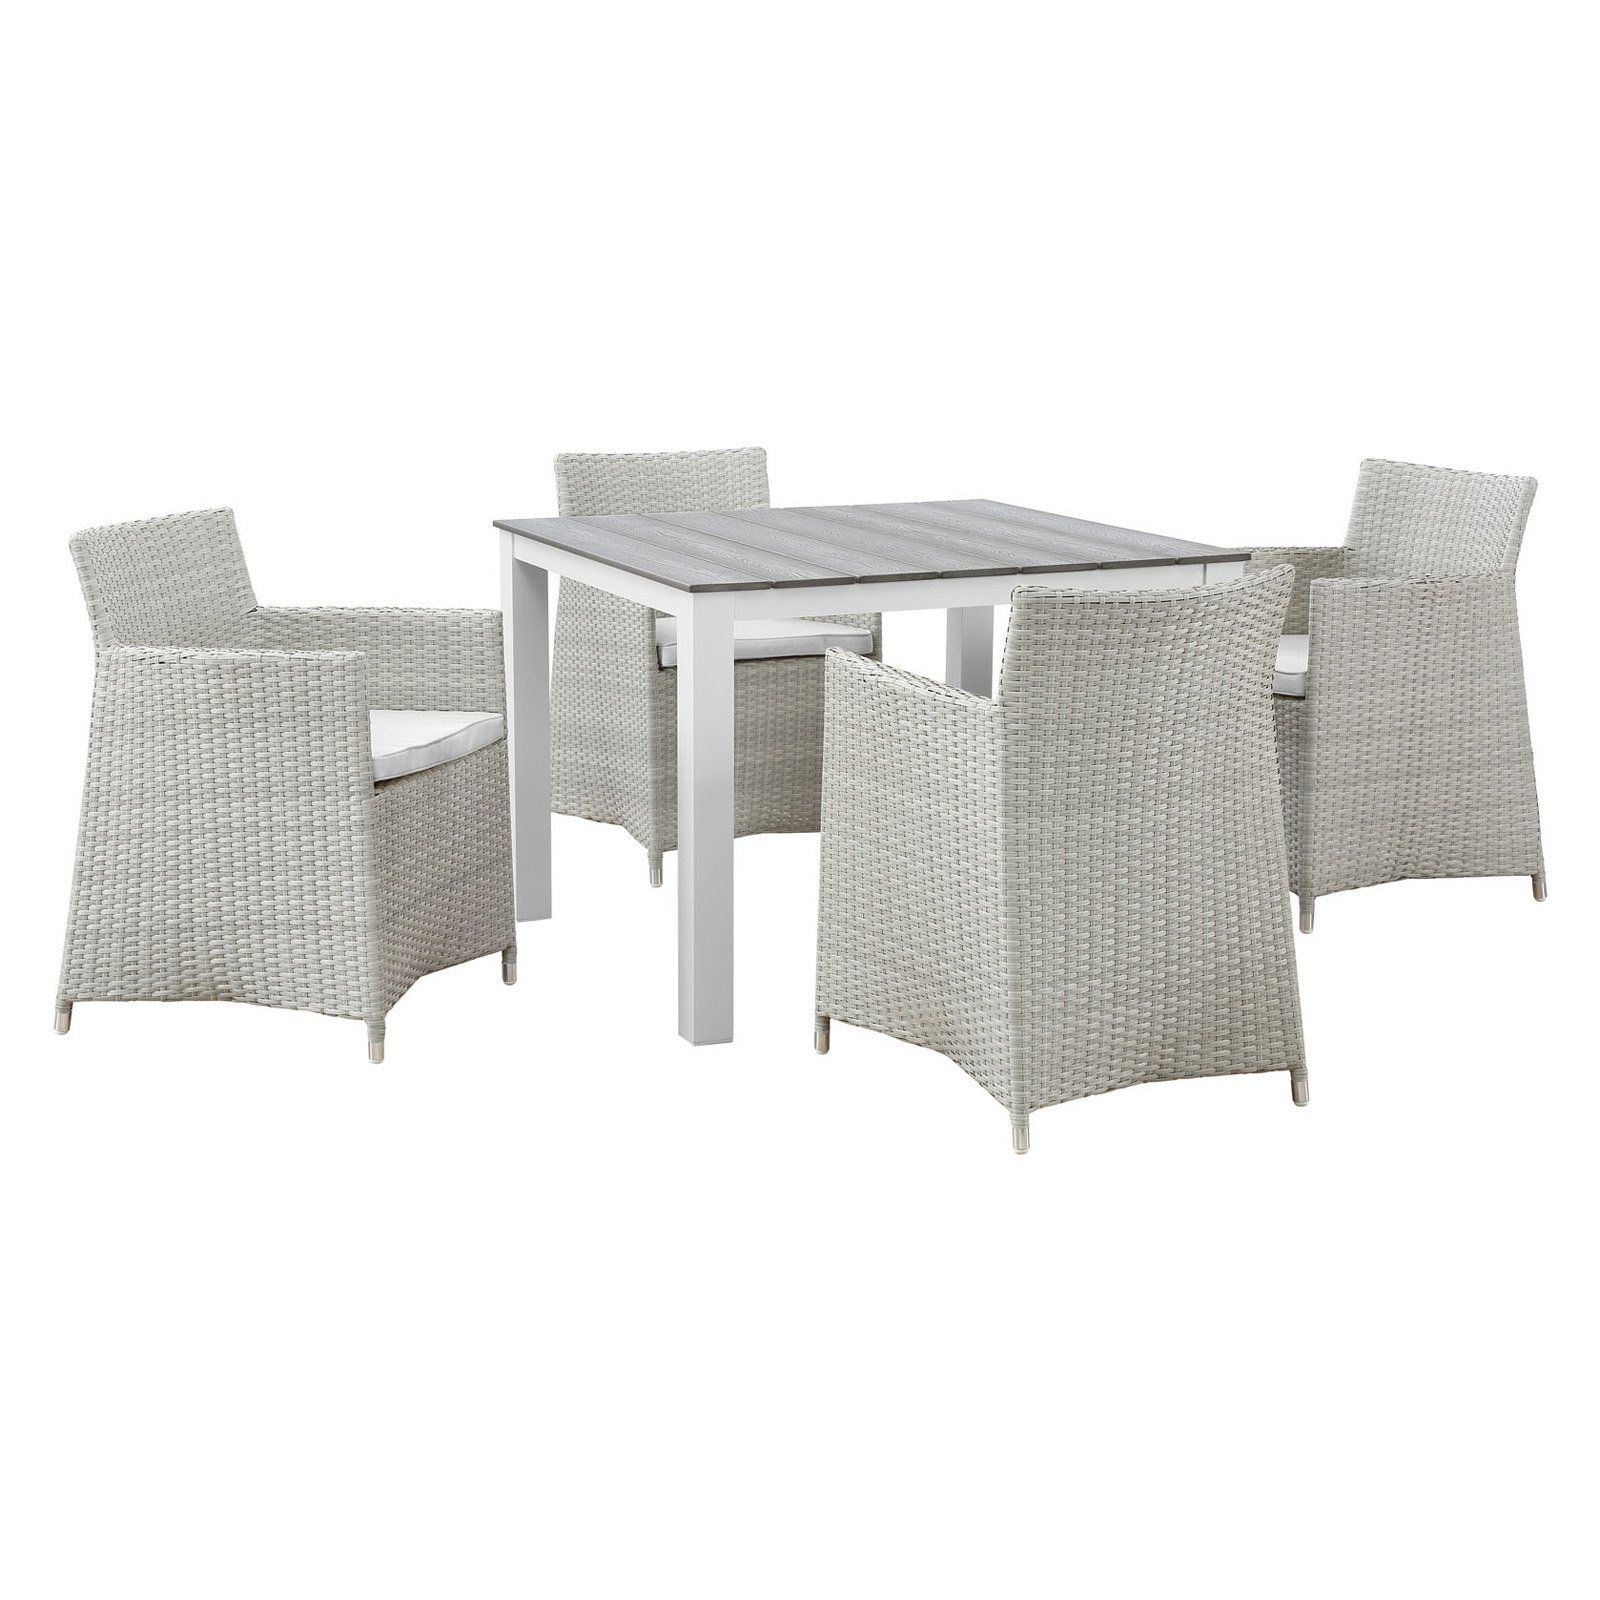 Outdoor modway junction 5 piece wicker patio dining set